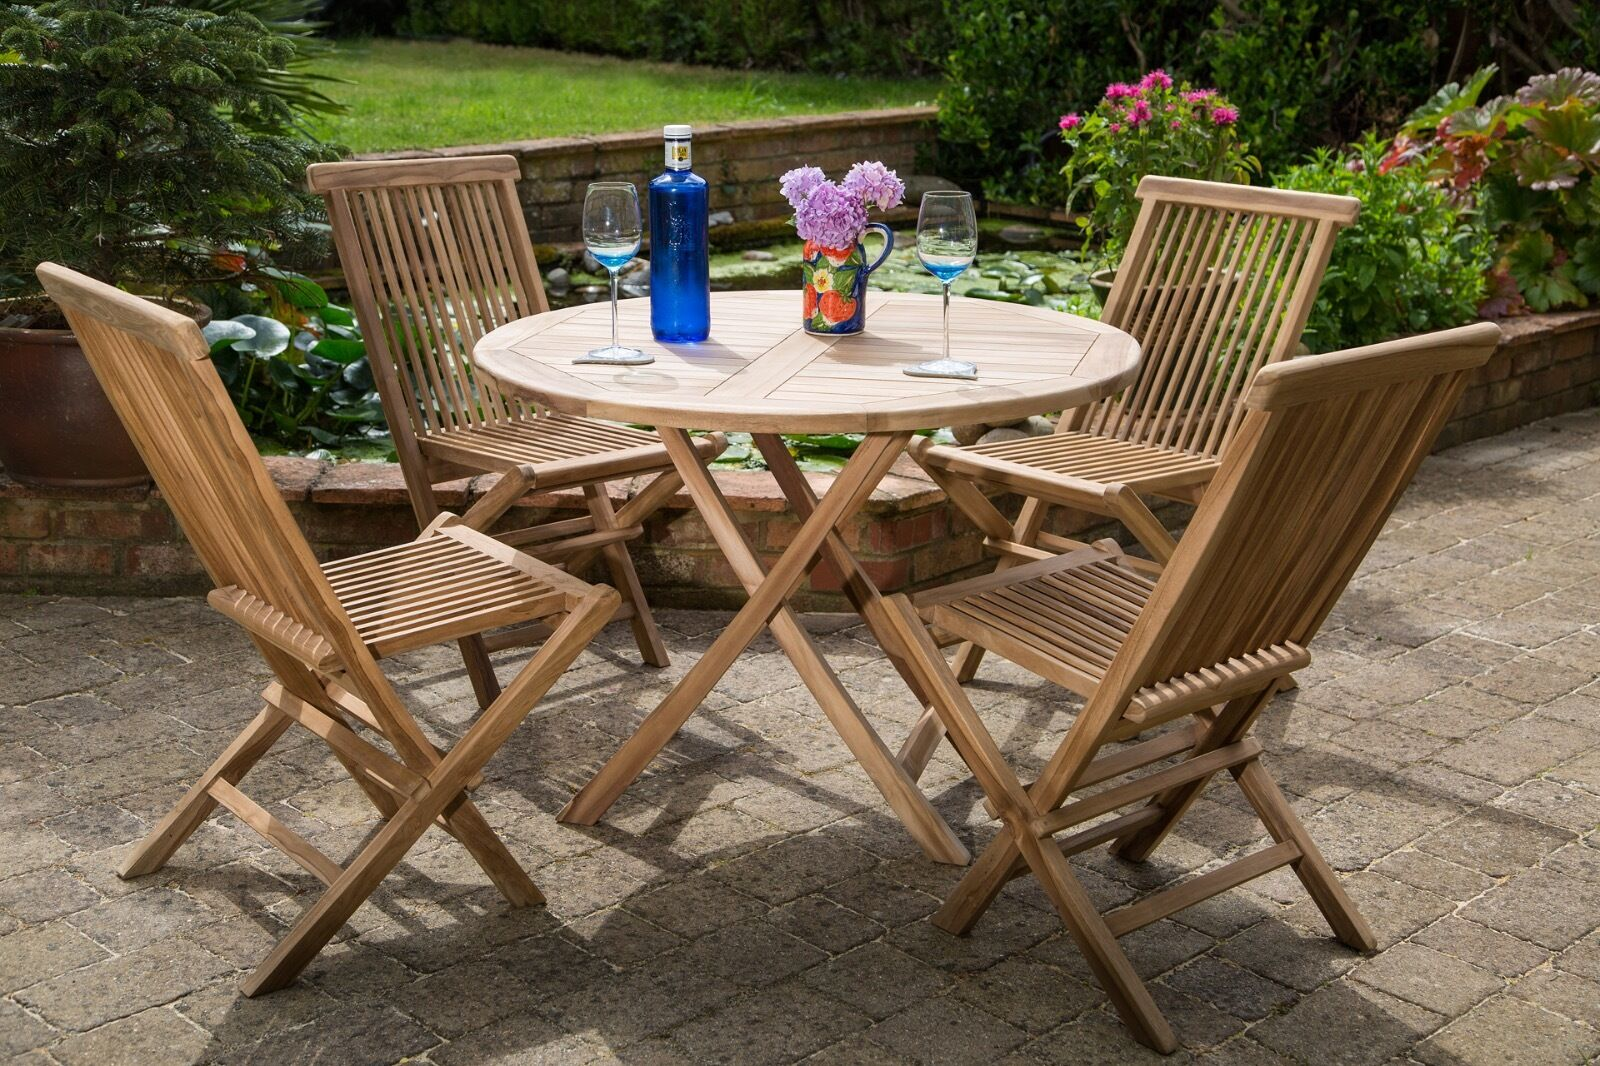 Shenley Teak Dining Table 4 Chairs Garden Furniture Set Free Delivery